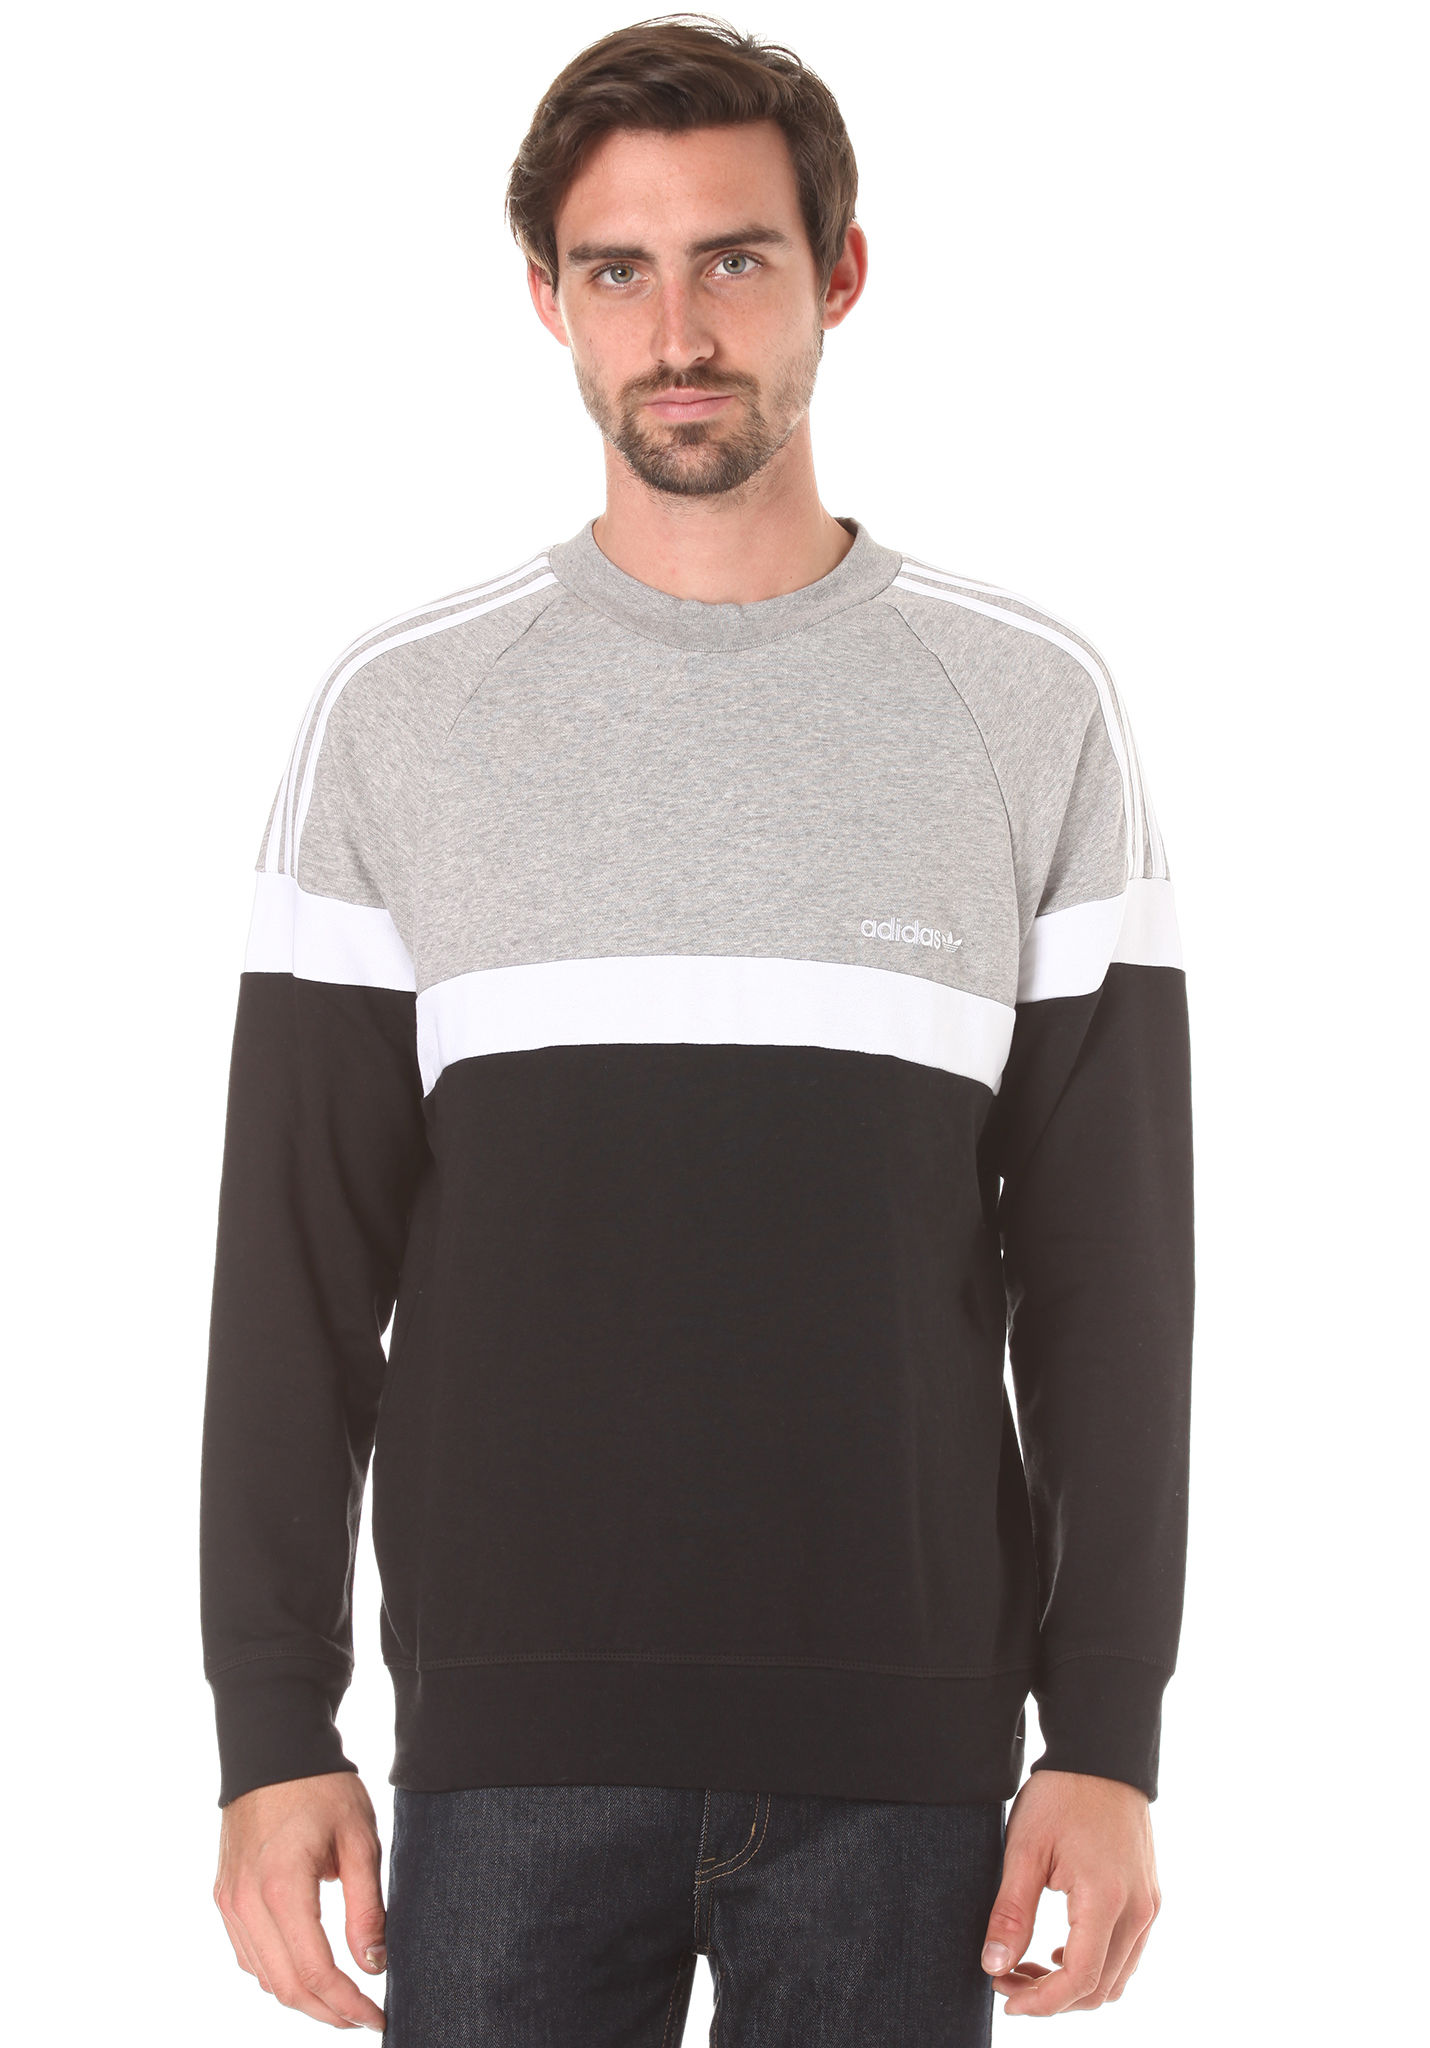 Sudadera Sports Hombres Para Crew Adidas Planet Negro Itasca RzxT77